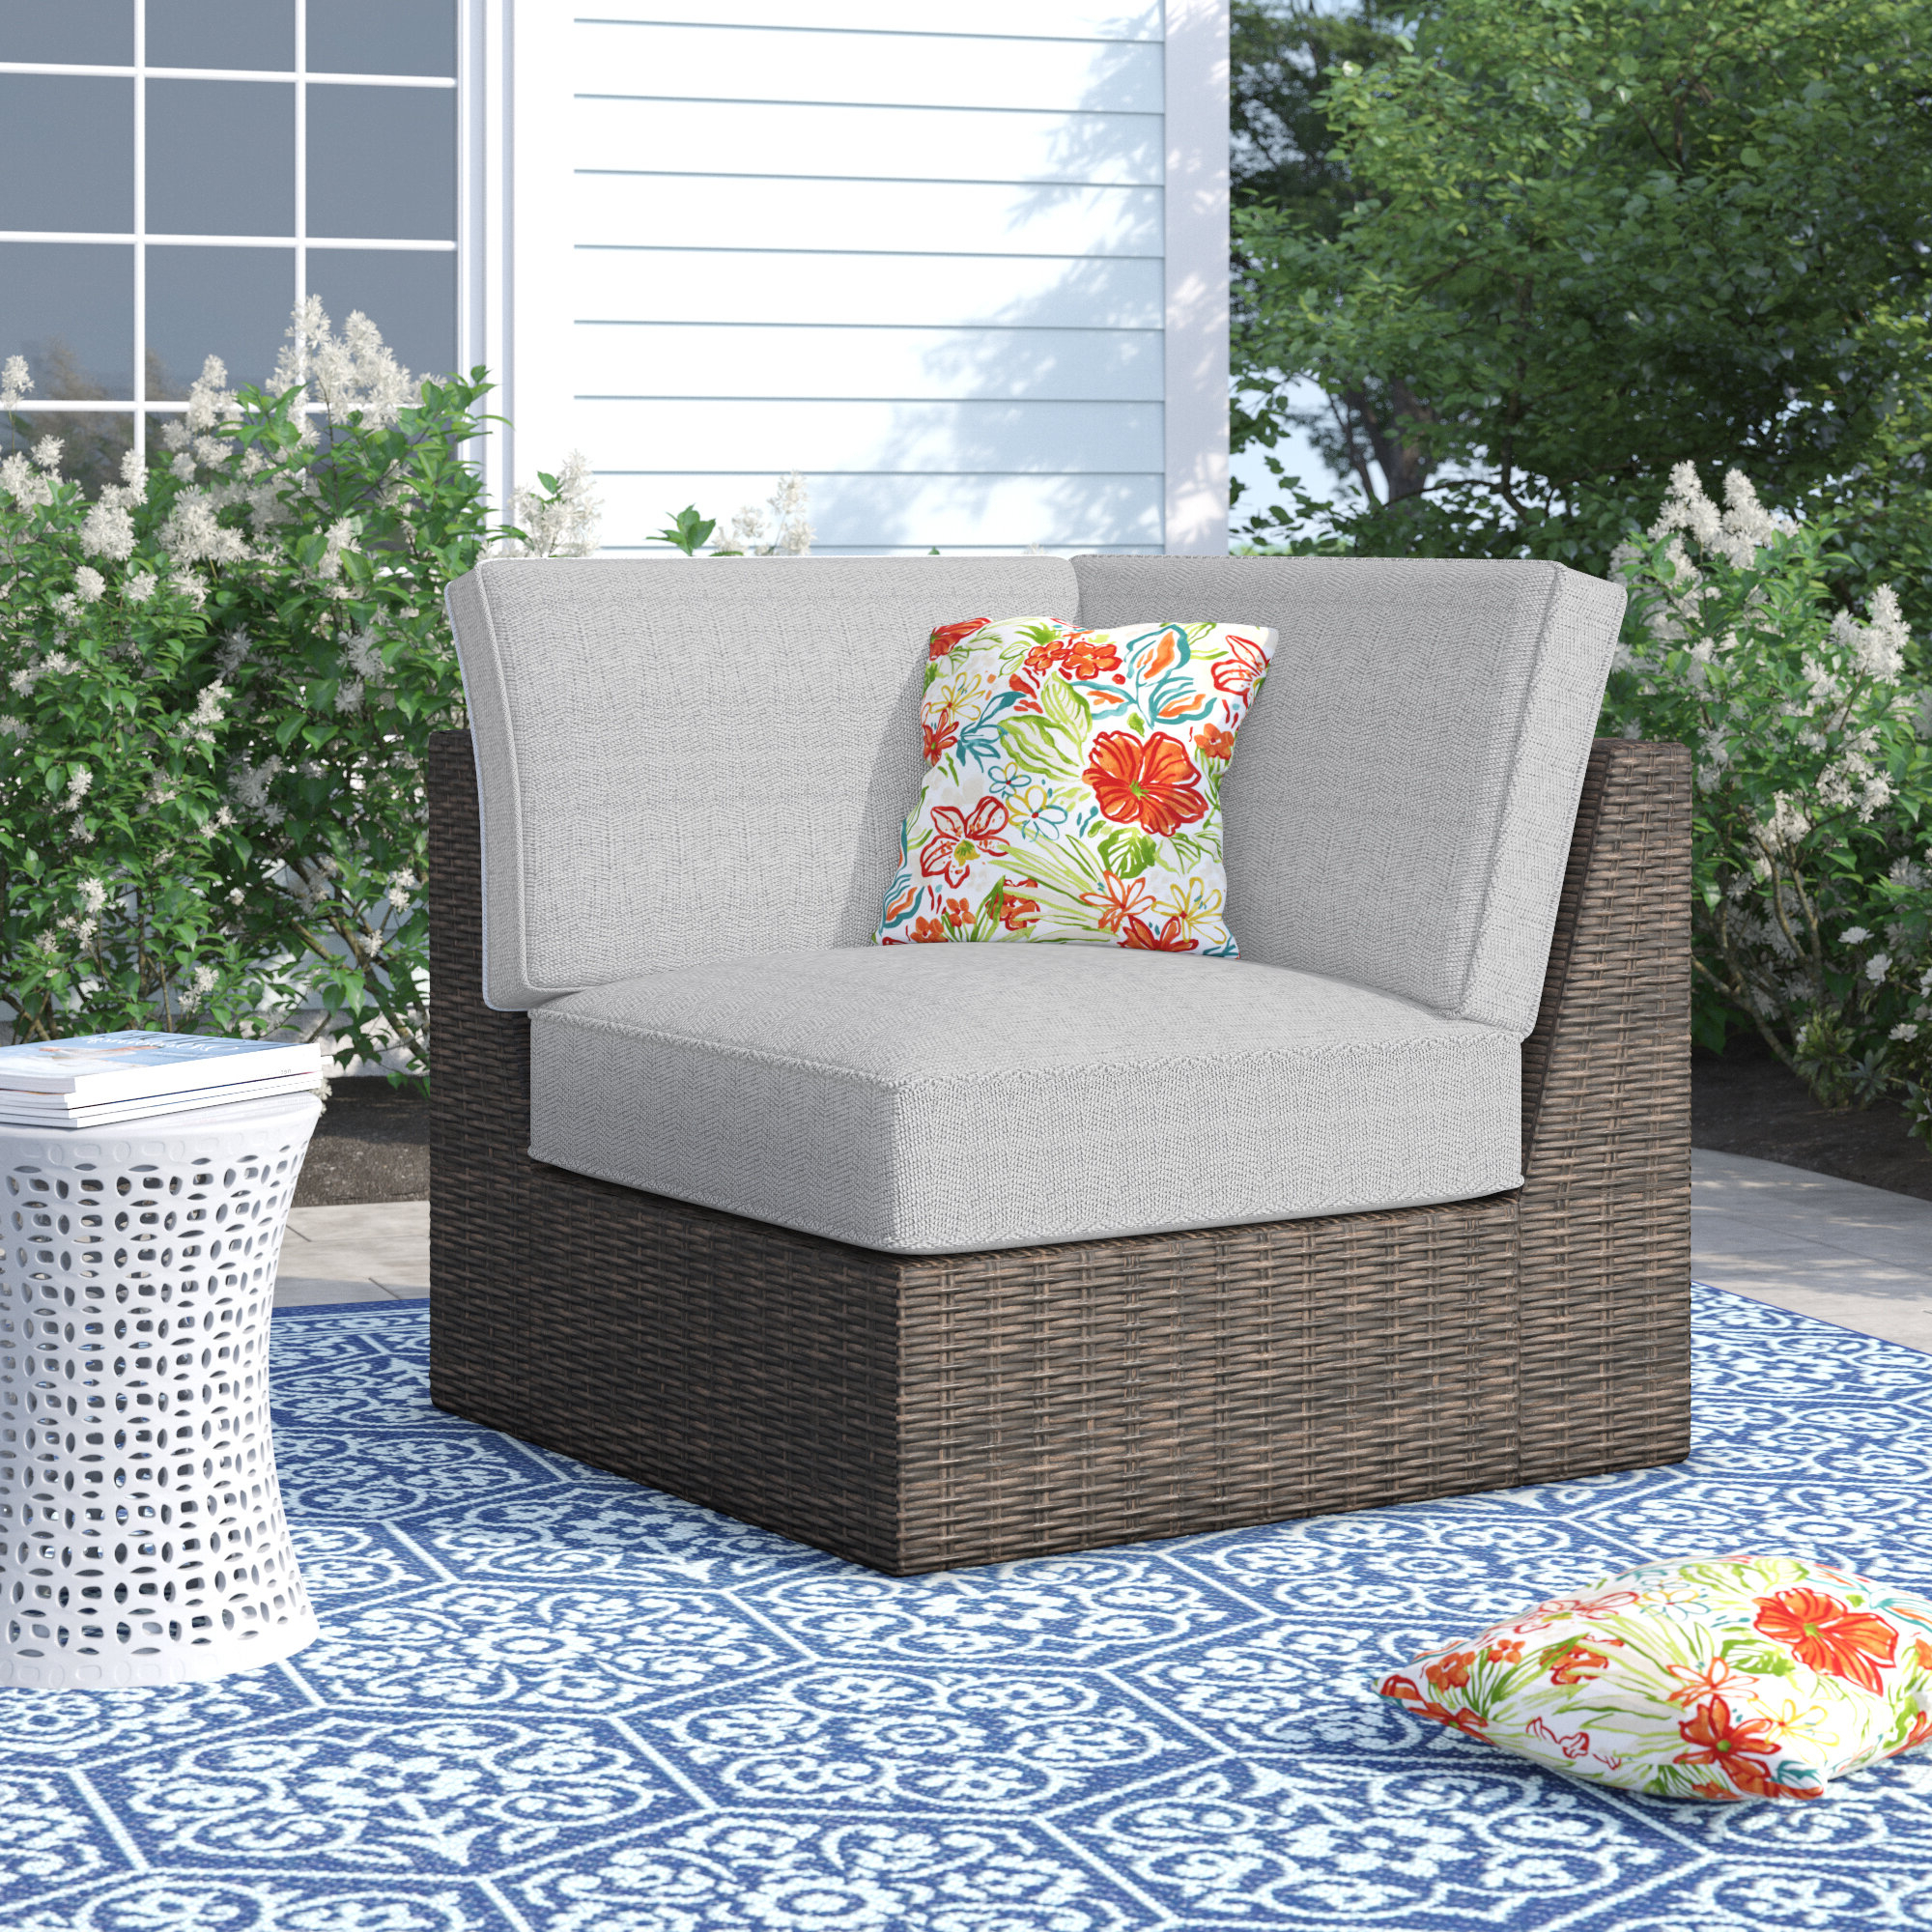 Well Known Oreland Patio Sofas With Cushions For Oreland Patio Chair With Cushions (View 3 of 20)